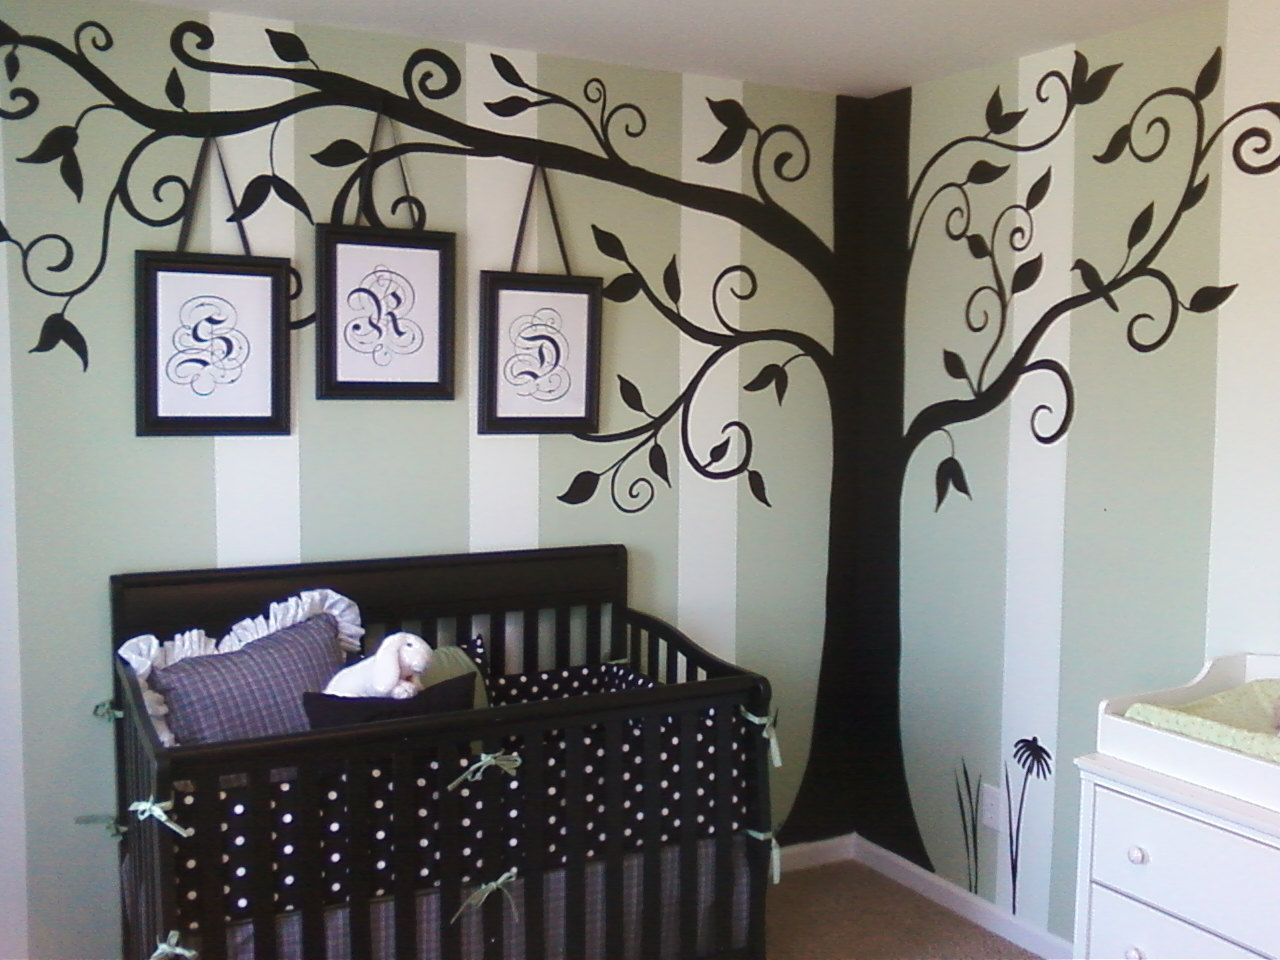 Apparently The Tree That I Like And Was Possibly Going To Add A Second Side To Already Has A Second Side Of Cour Unisex Baby Room Home Family Tree Wall Decor